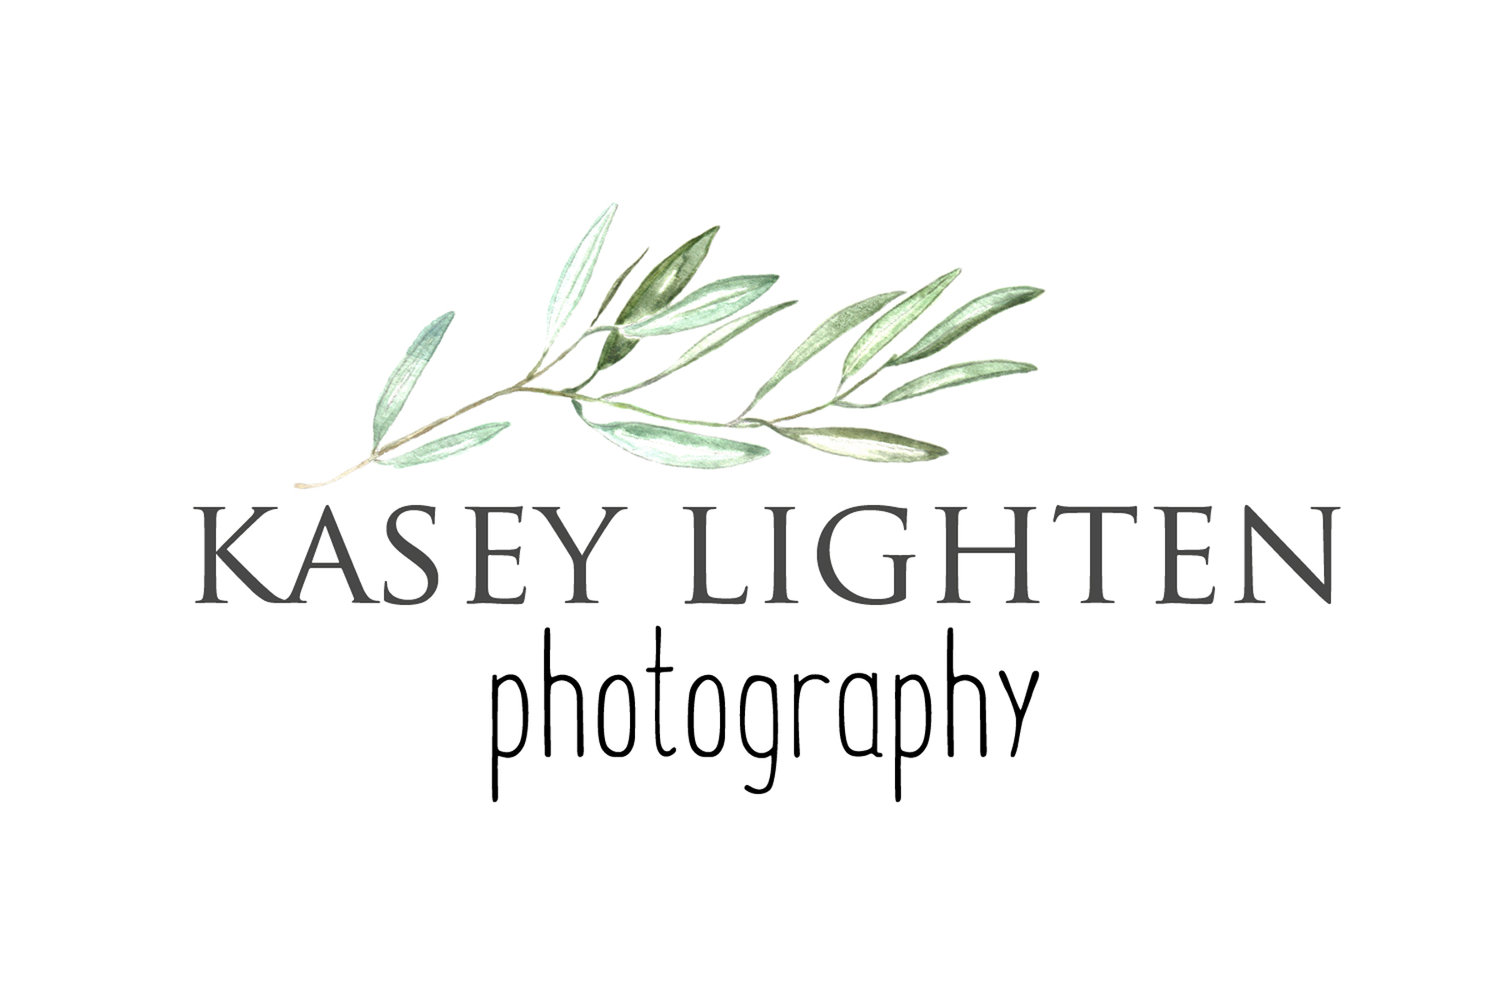 Kasey Lighten Photography